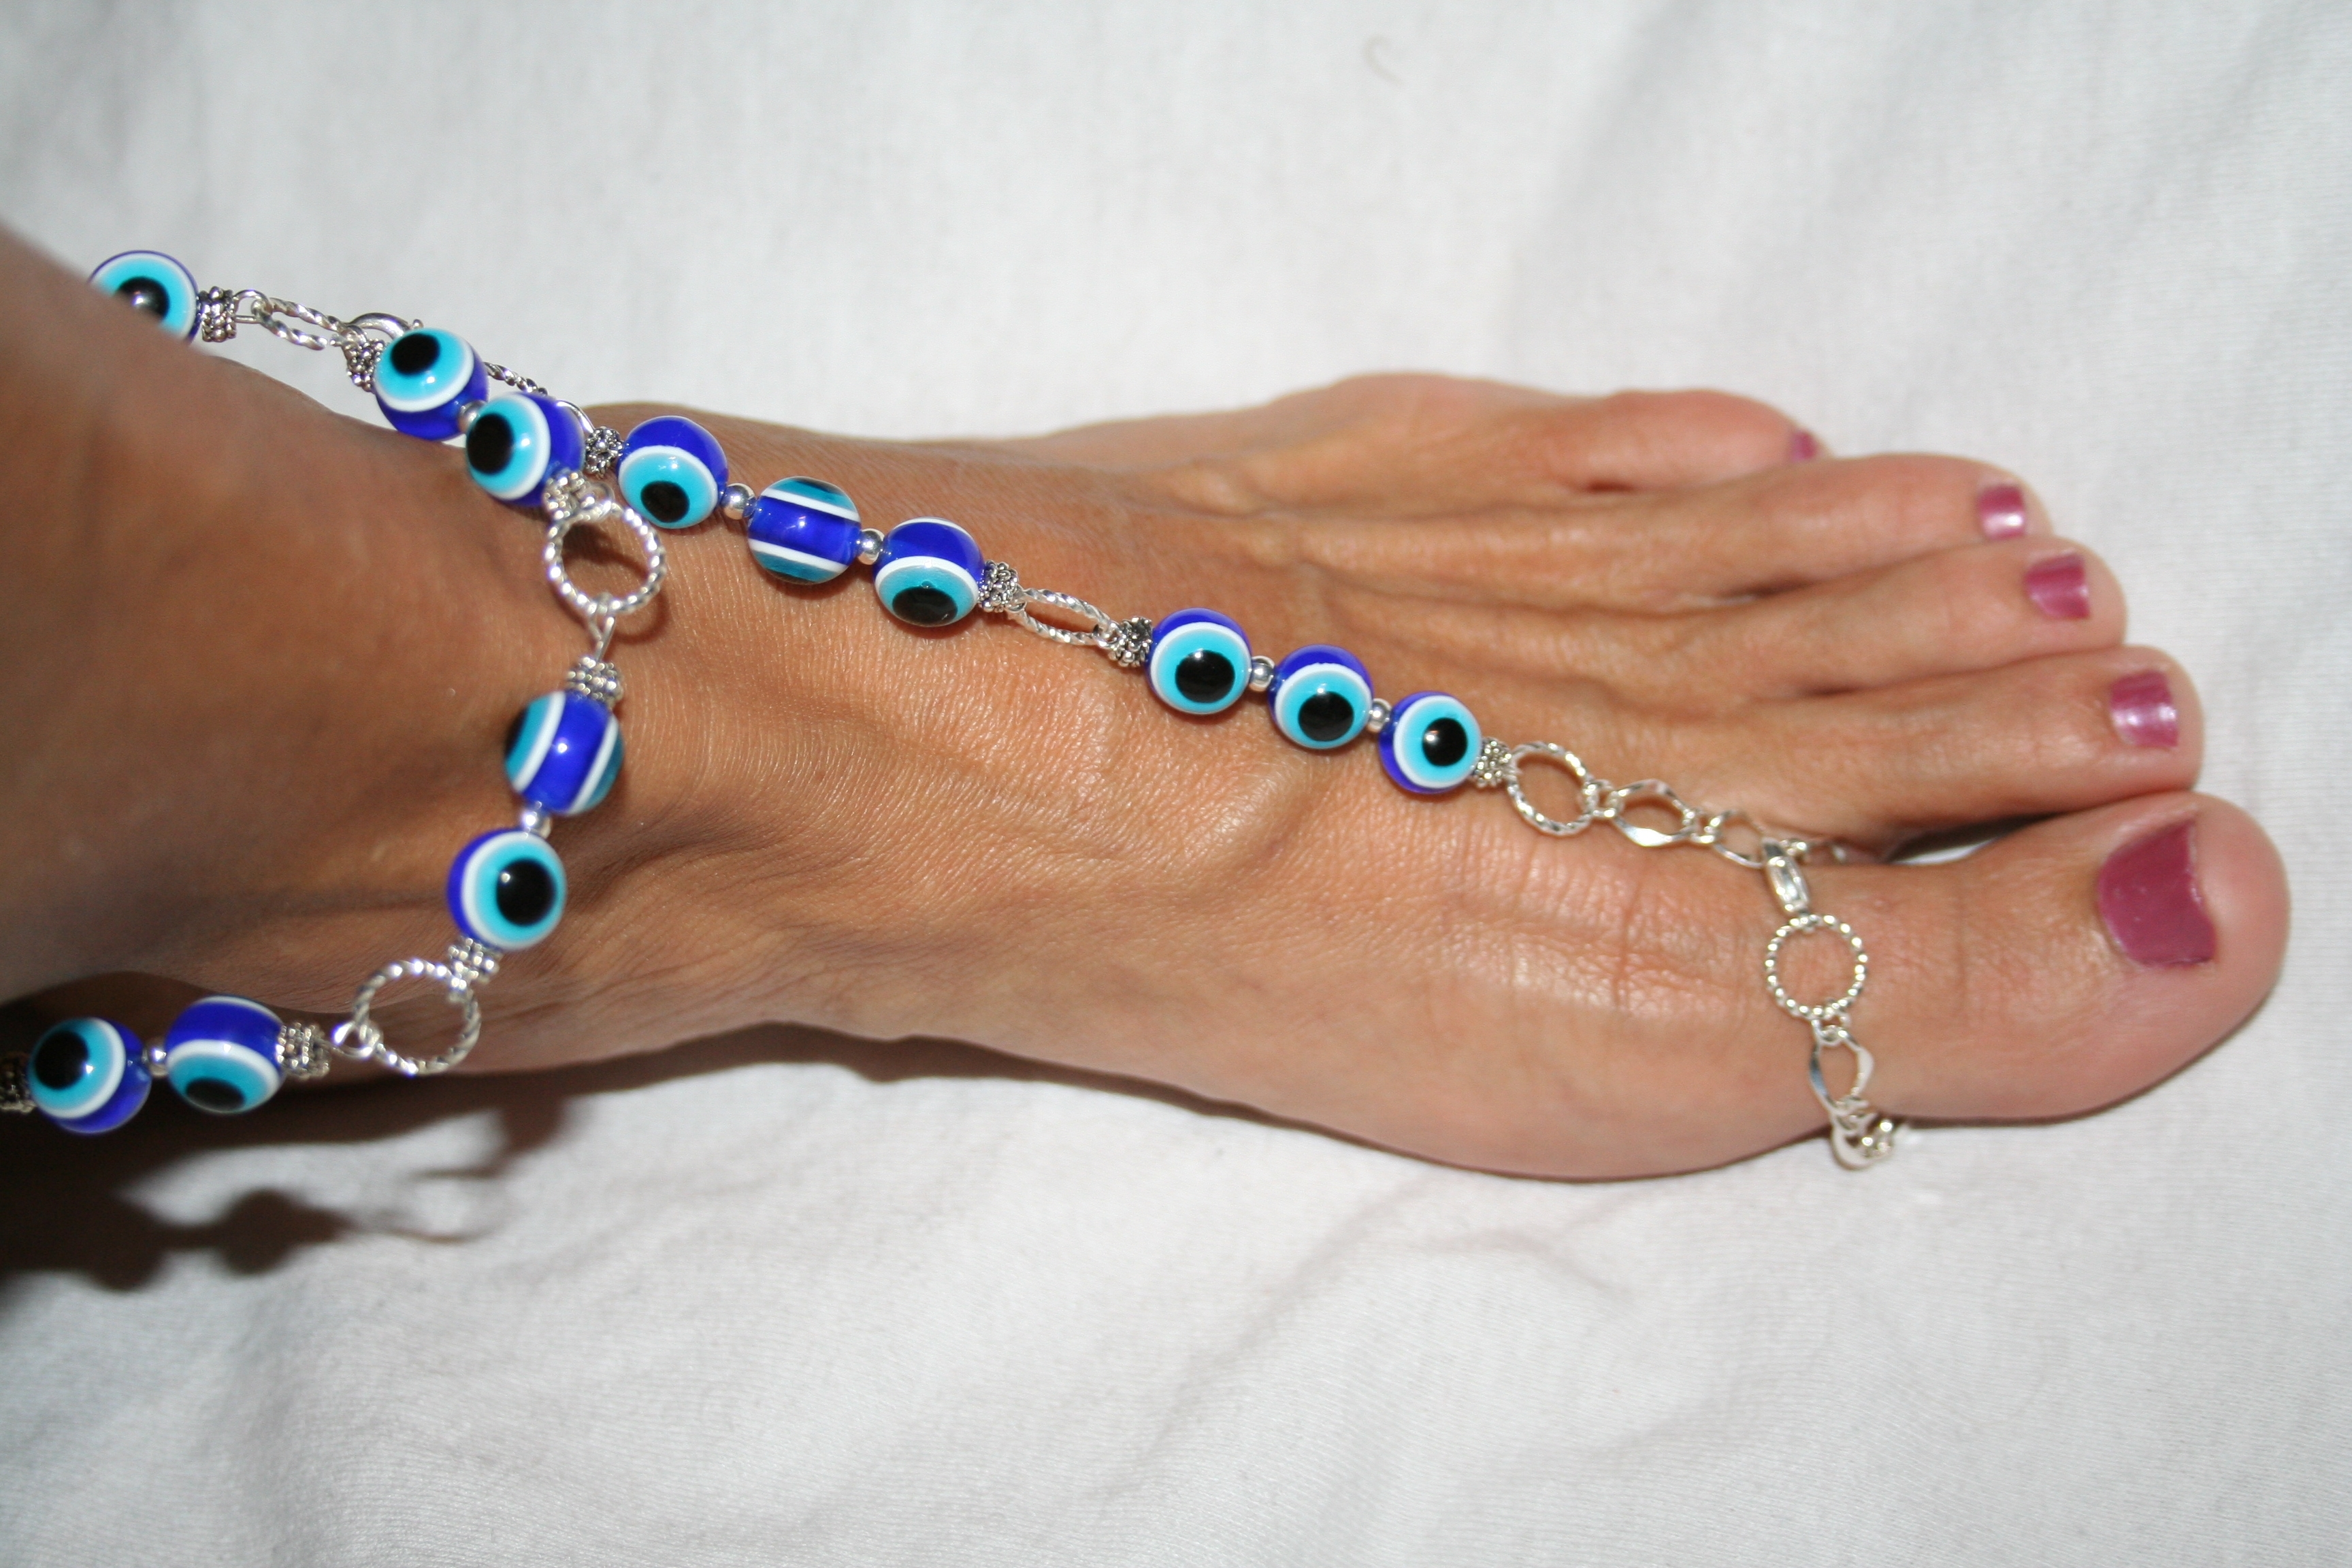 chain turquoise listing anklet sterling boho gift body bracelet il wedding ankle bridal jewelry silver custom blue bracelets something friendship beach fullxfull